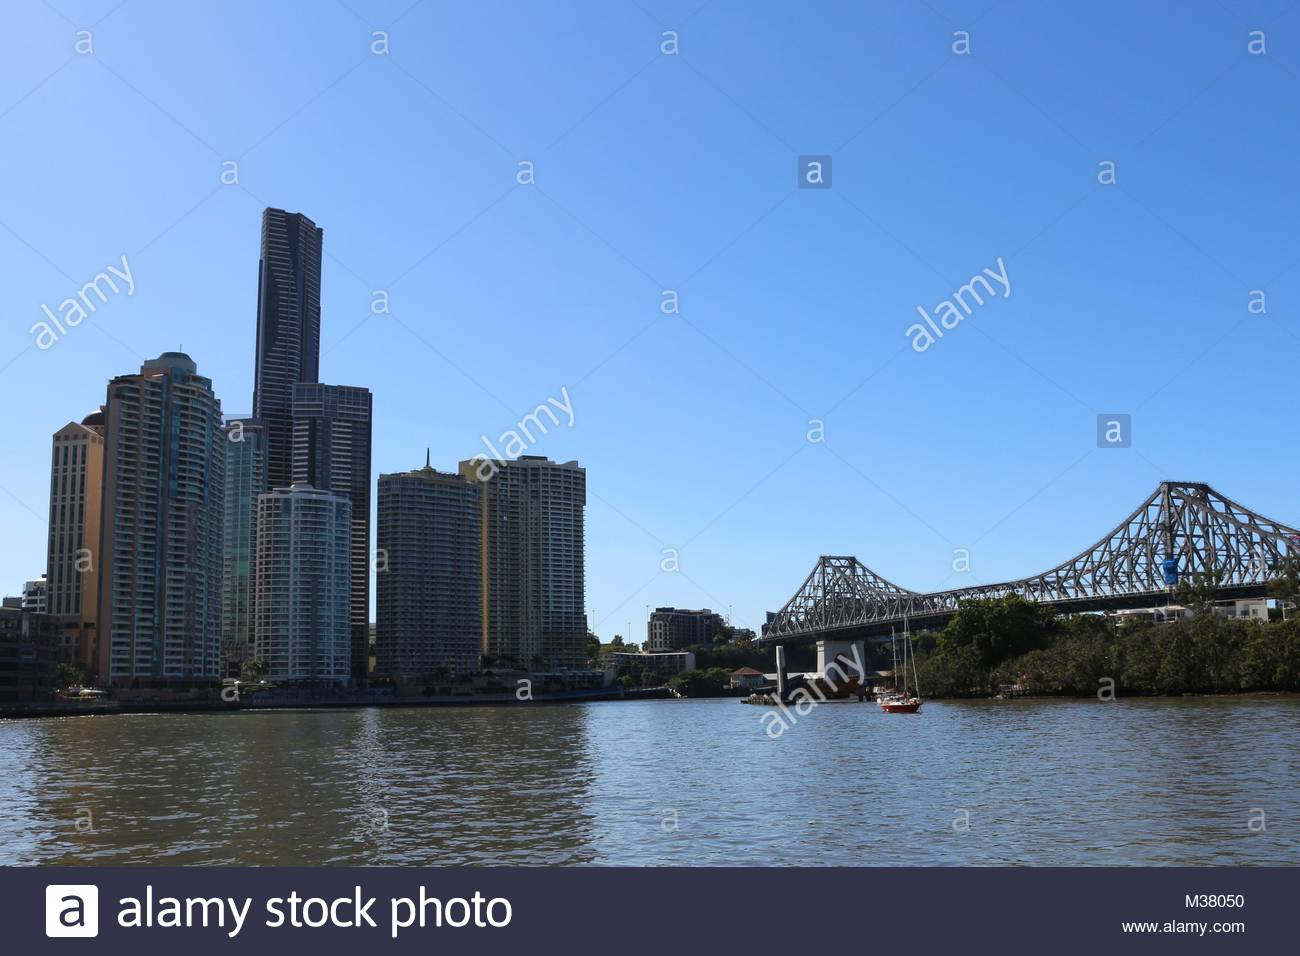 Story bridge and skyscrapers under blue skies in Brisbane, Australia - Stock Image